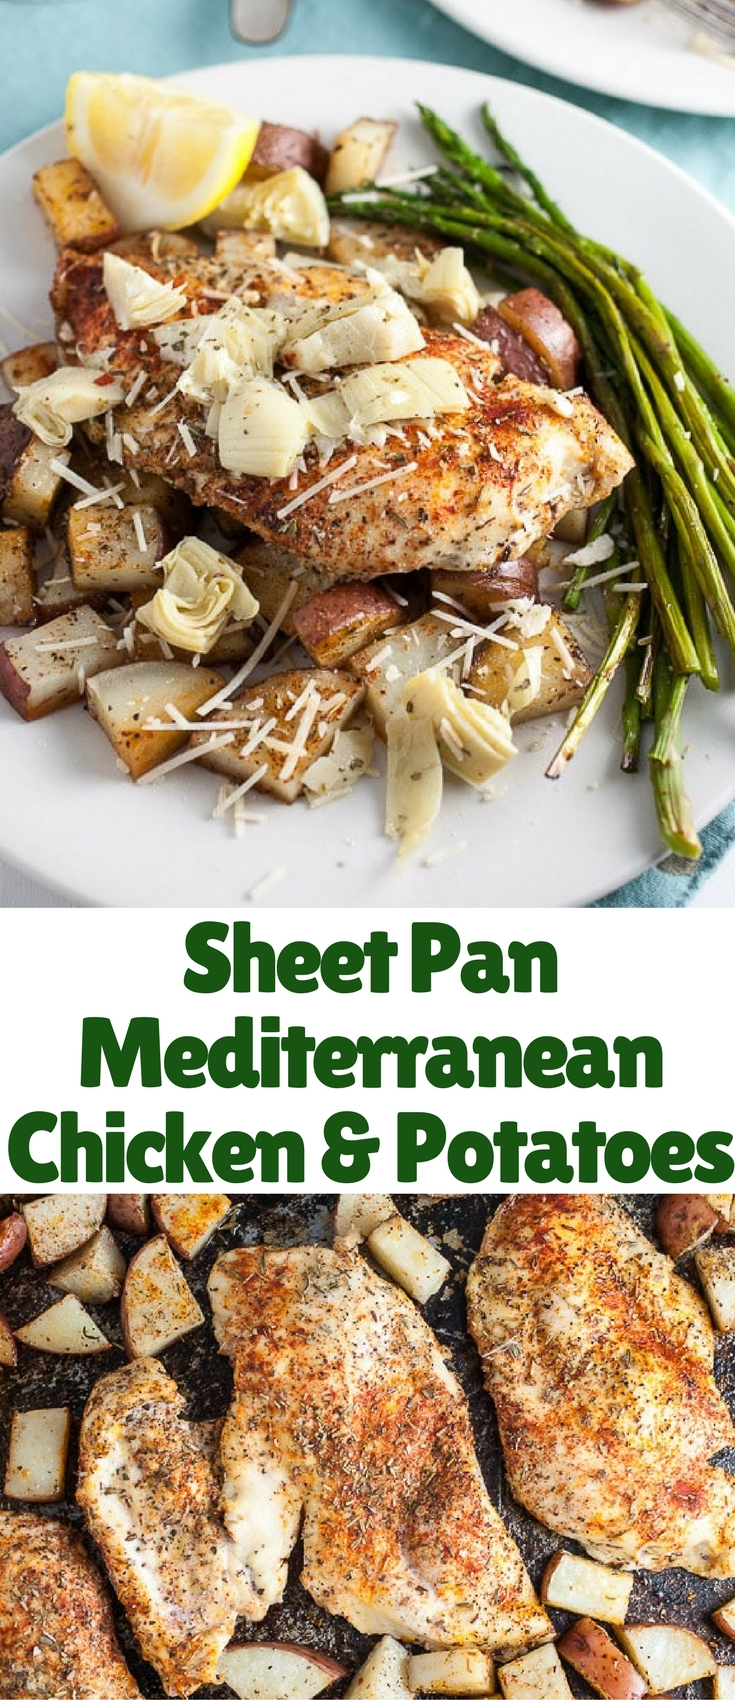 A super simple Mediterranean-style sheet pan recipe featuring roasted chicken breast, potatoes, and asparagus topped with zesty artichokes and lemon.